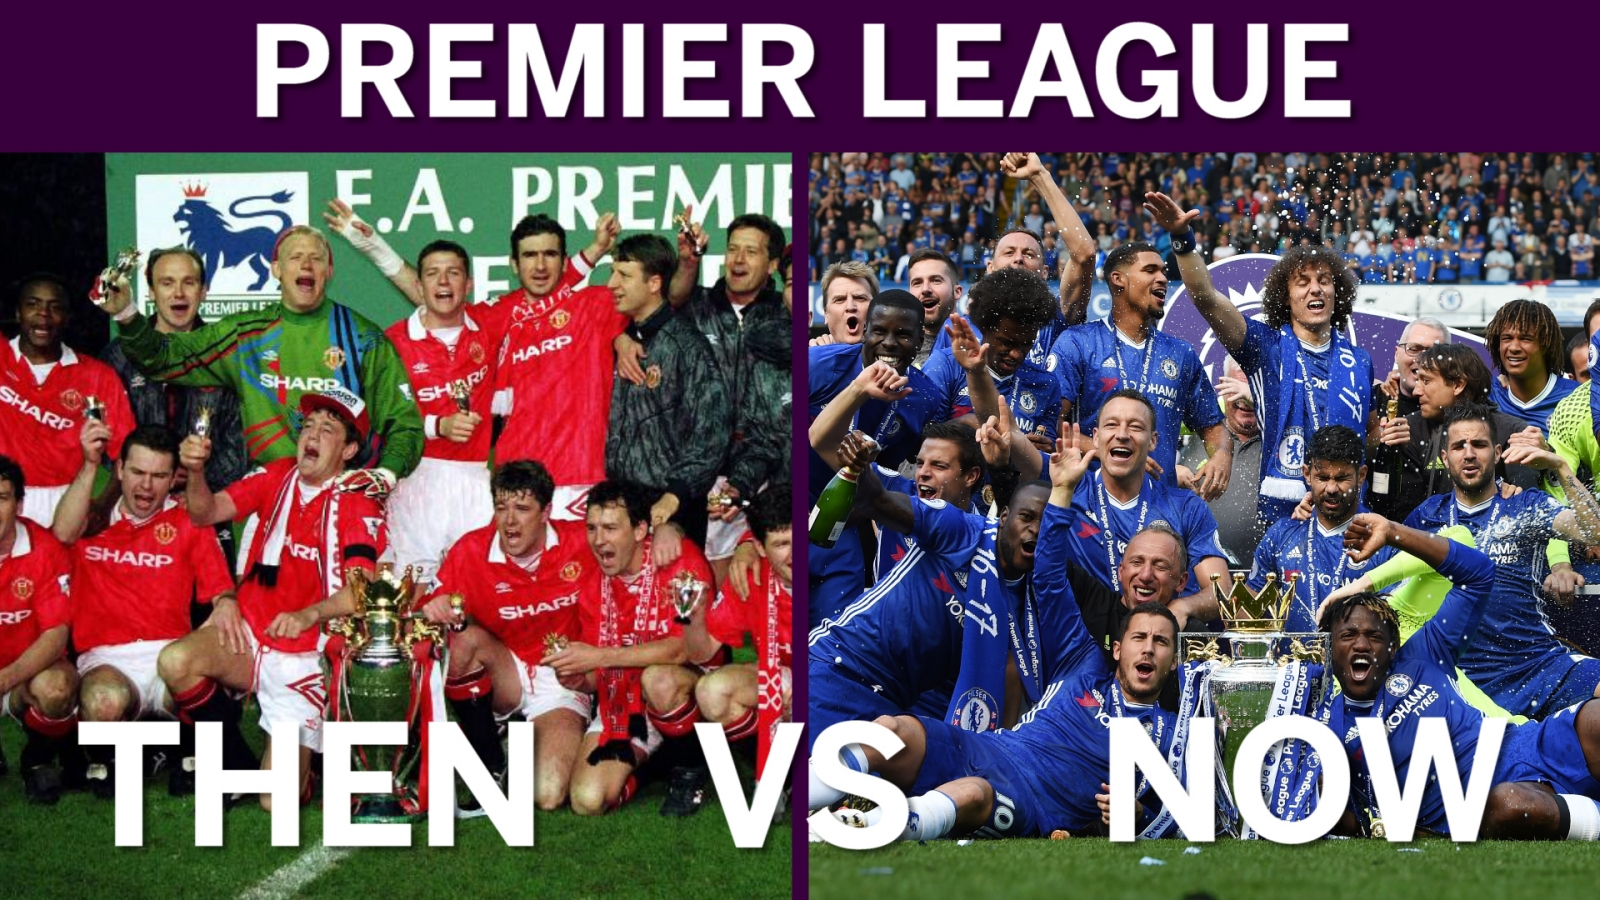 premier-league-at-25-then-vs-now